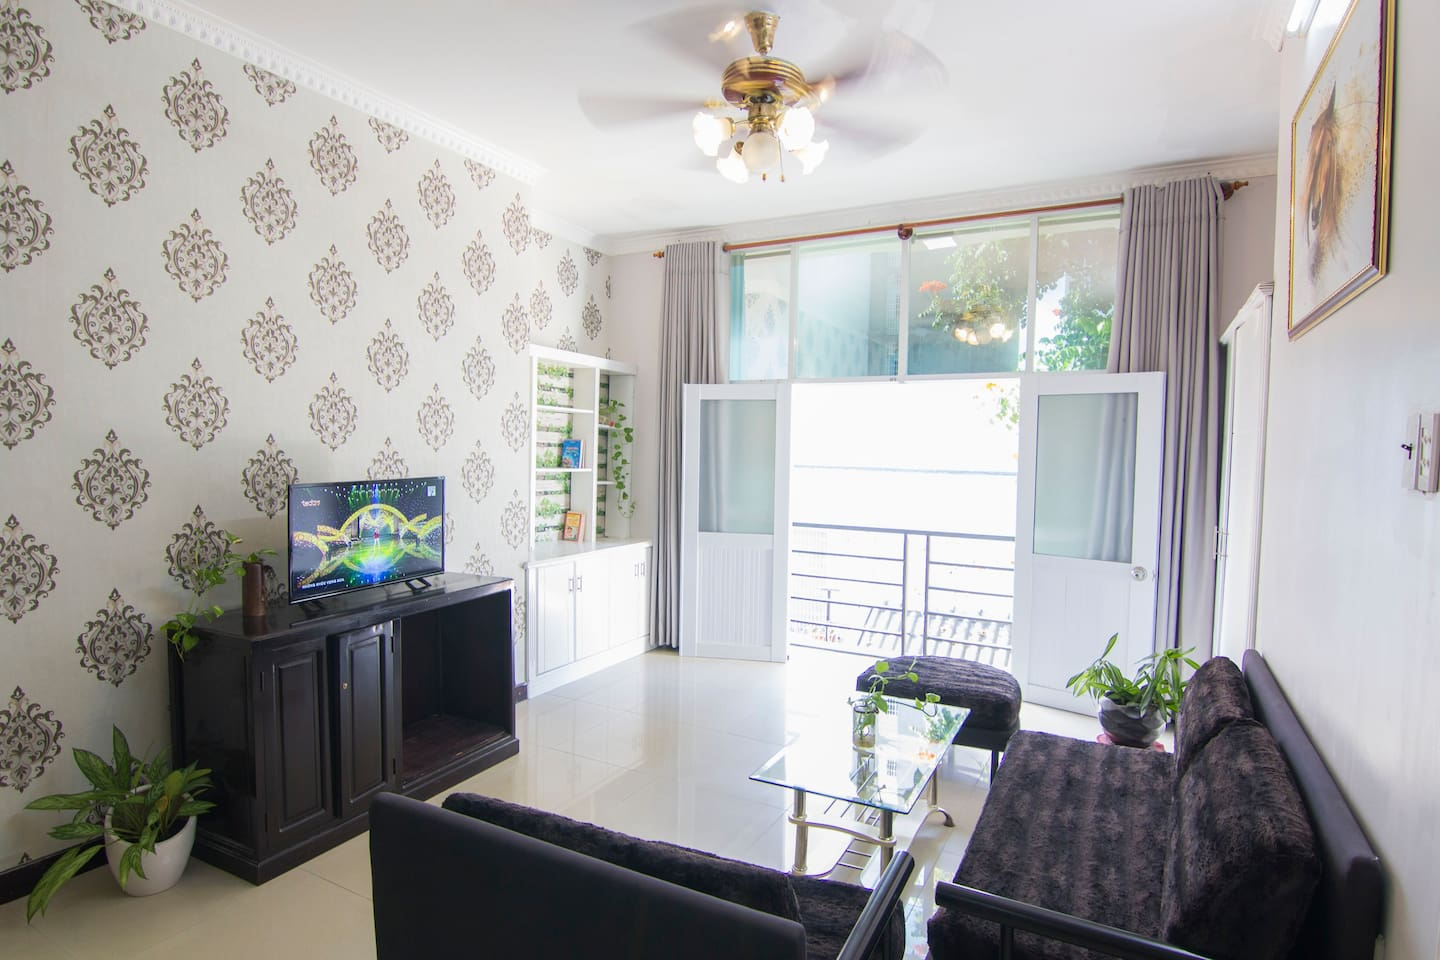 Vung Tau Villa Ali 5B has a spacious living room in the first floor with TV, sofa, bookshelf